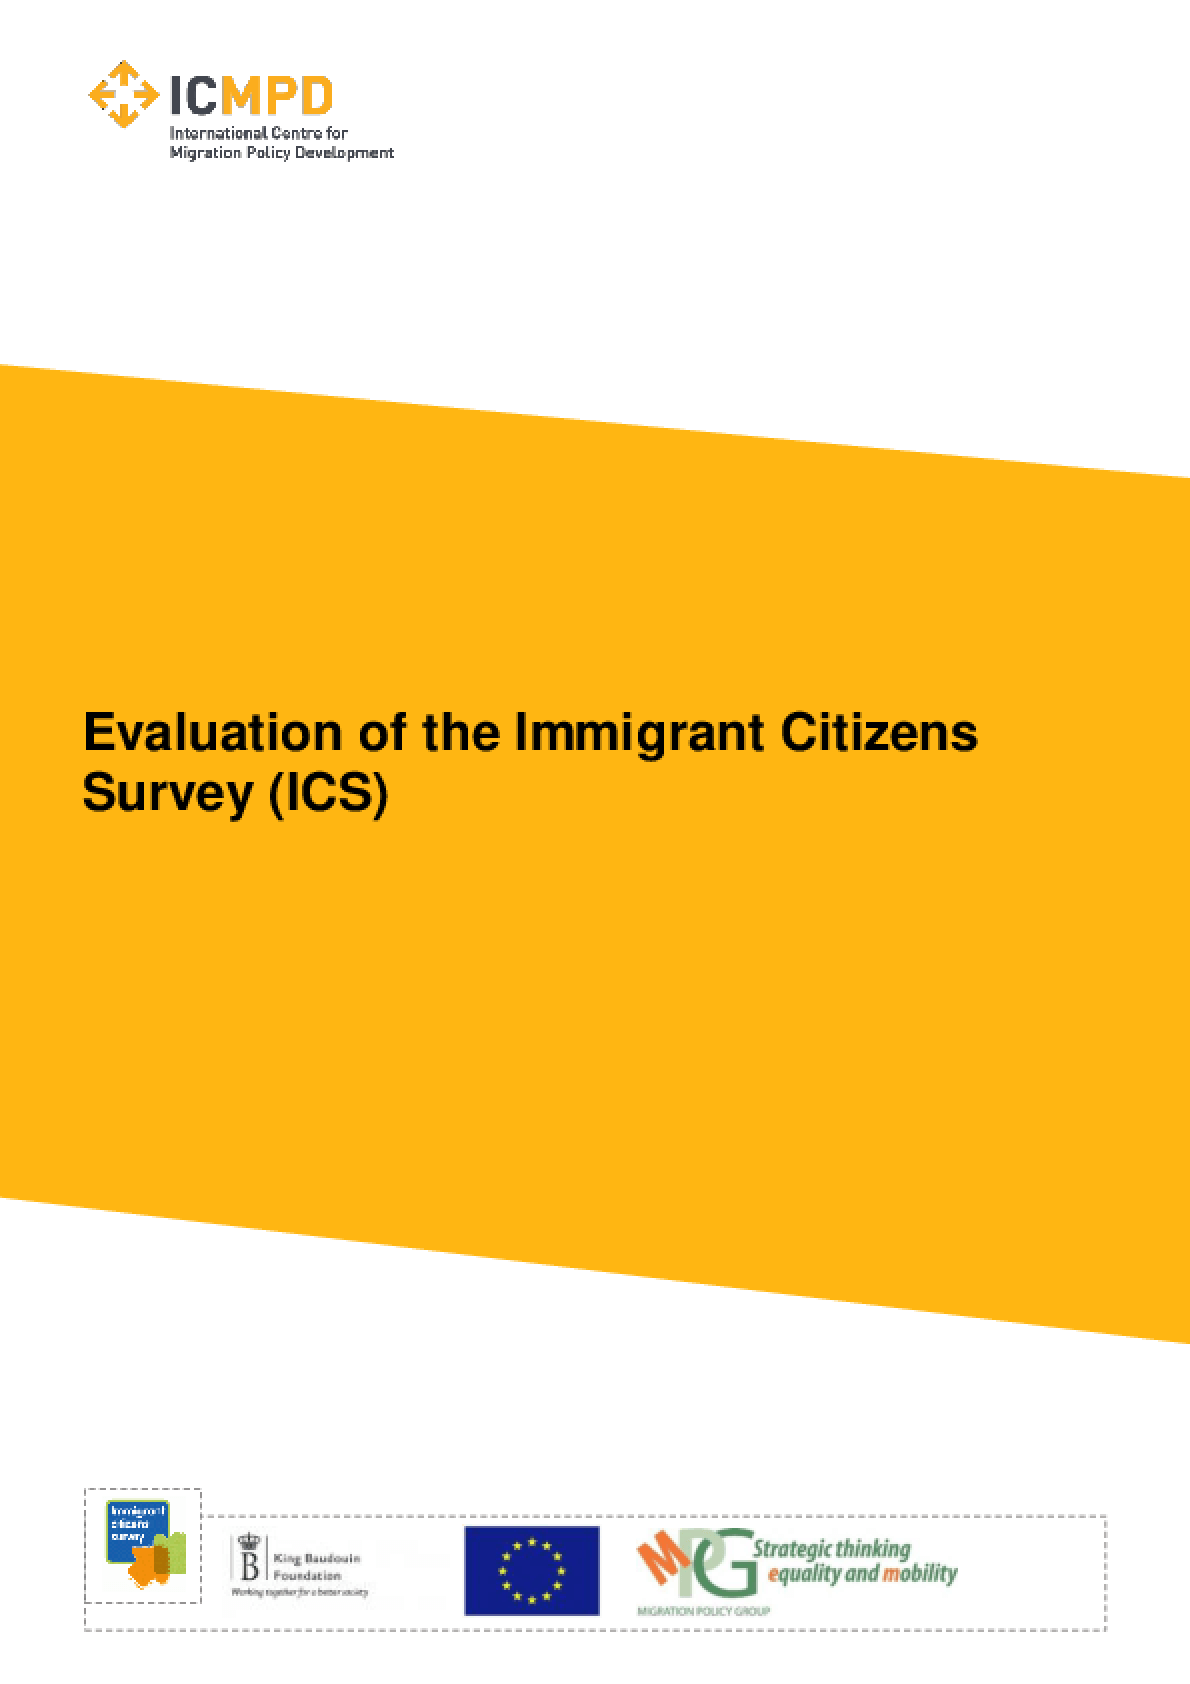 Evaluation of the Immigrant Citizens Survey (ICS)